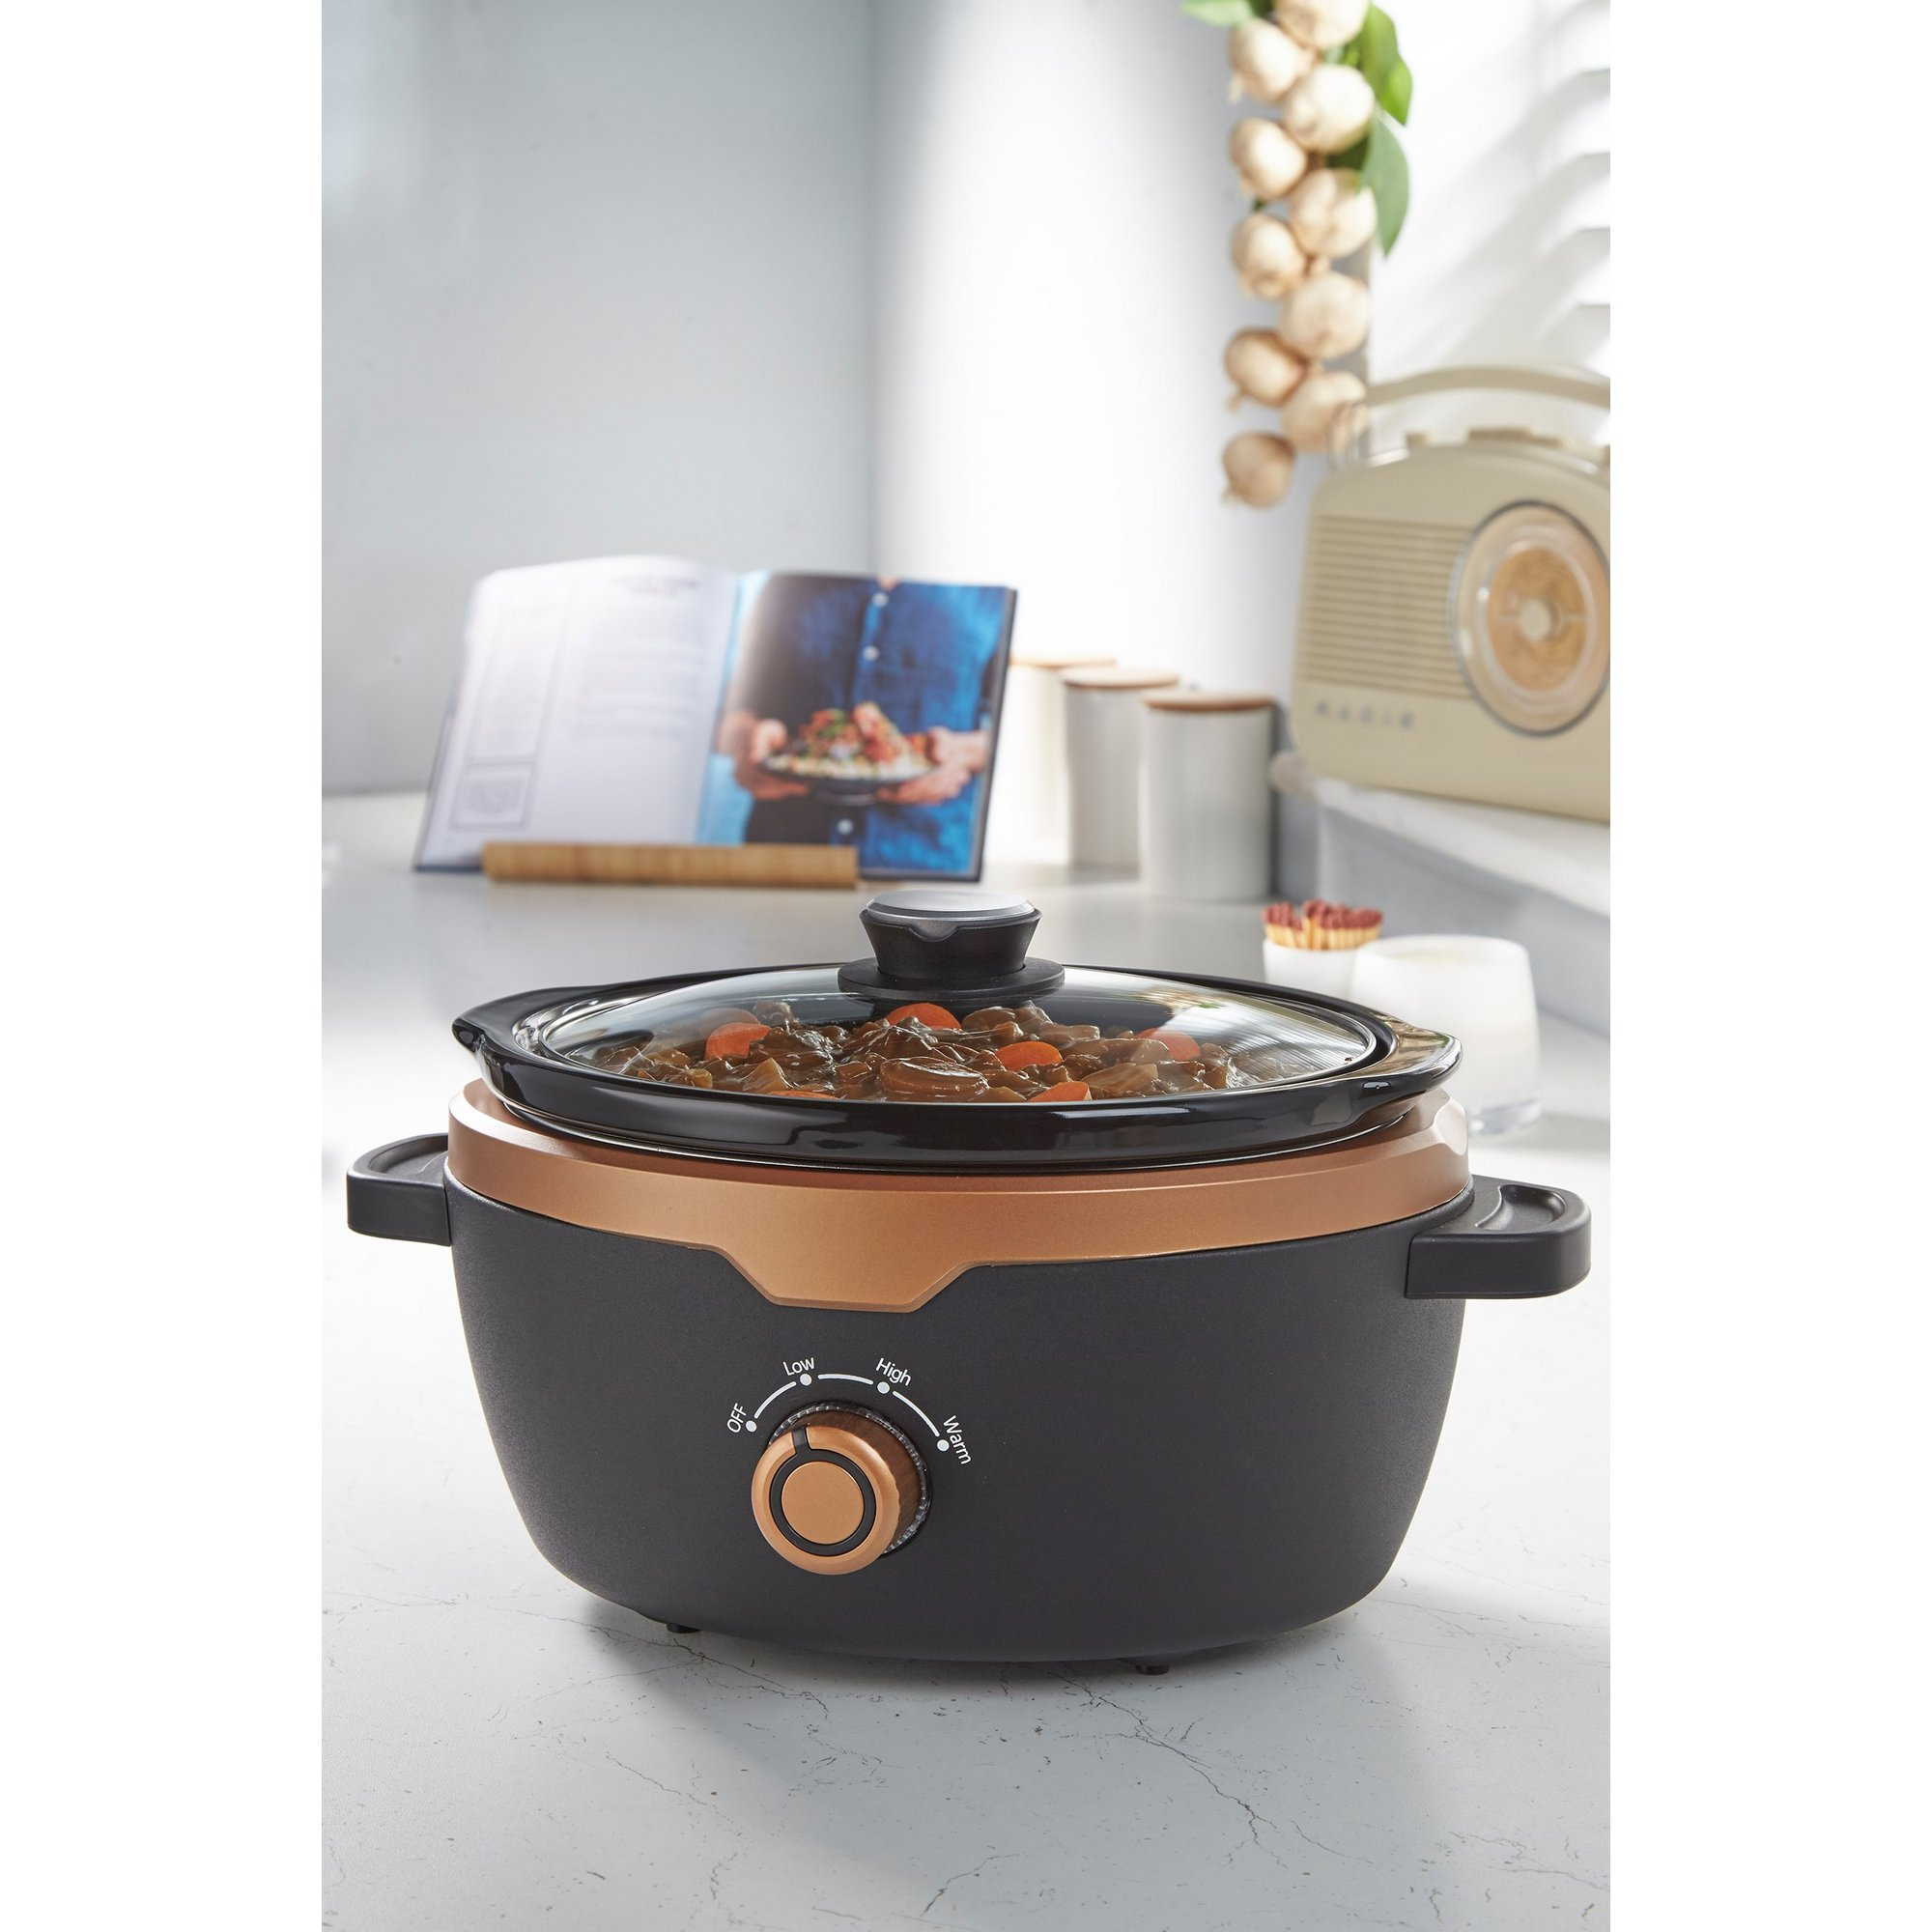 Image of 3.5 Litre Slow Cooker - Black/Copper